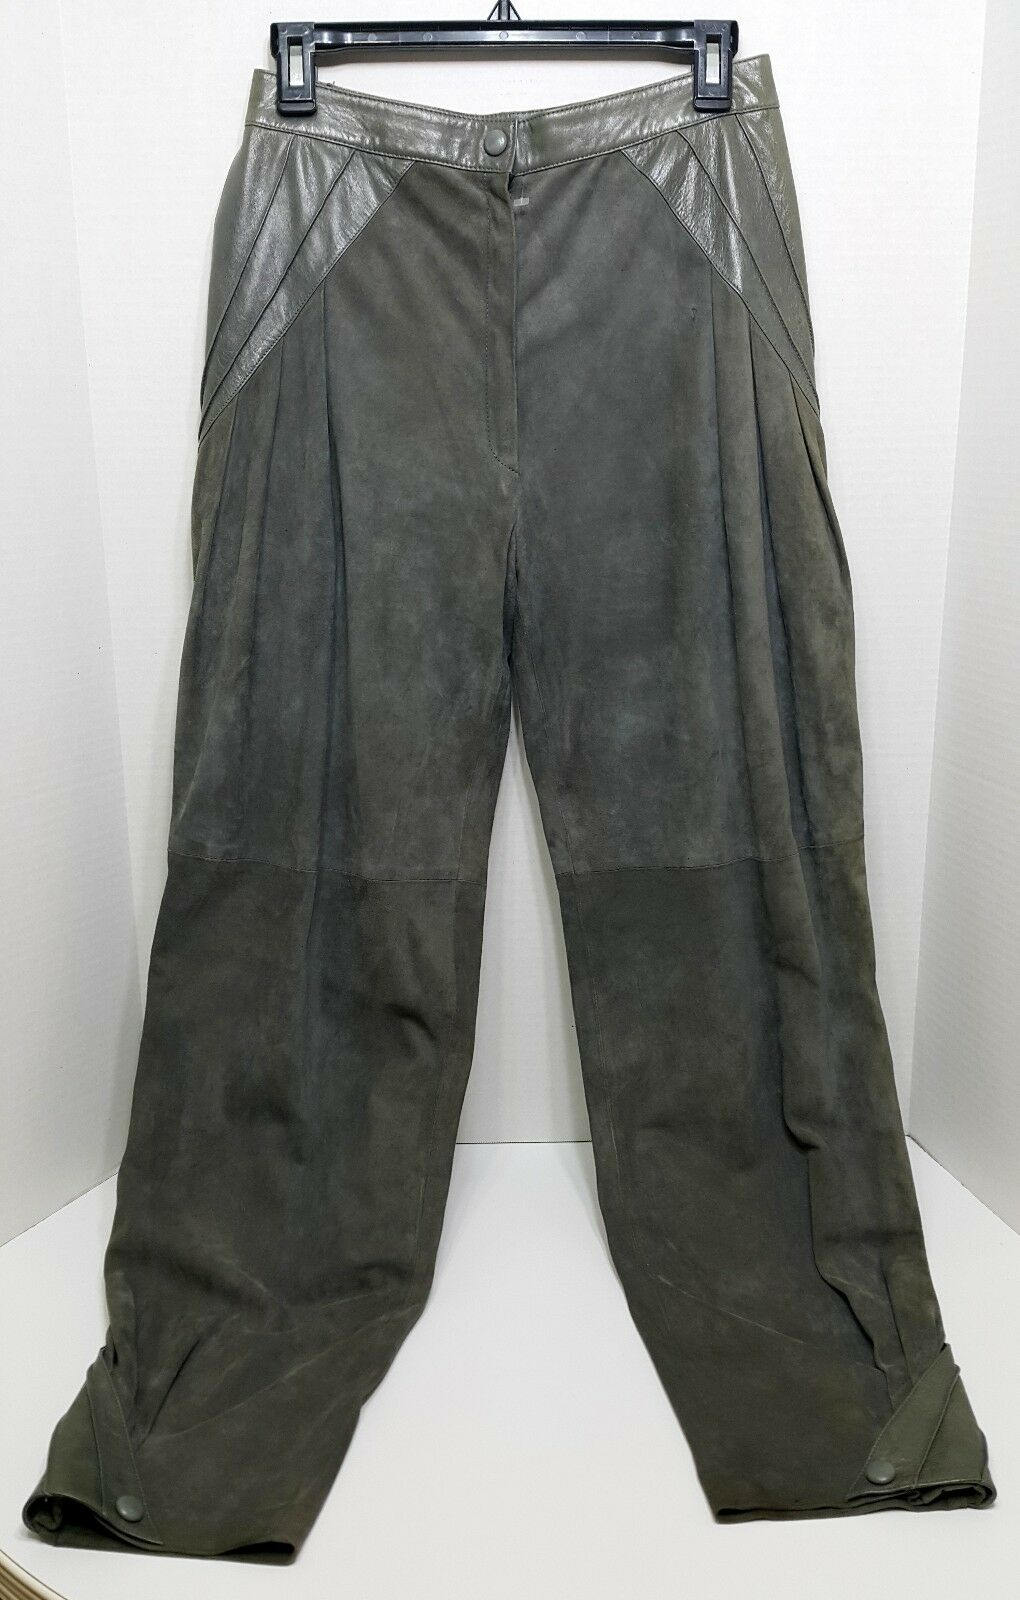 Franca Mossini Women's Pants Sz 44 Made in